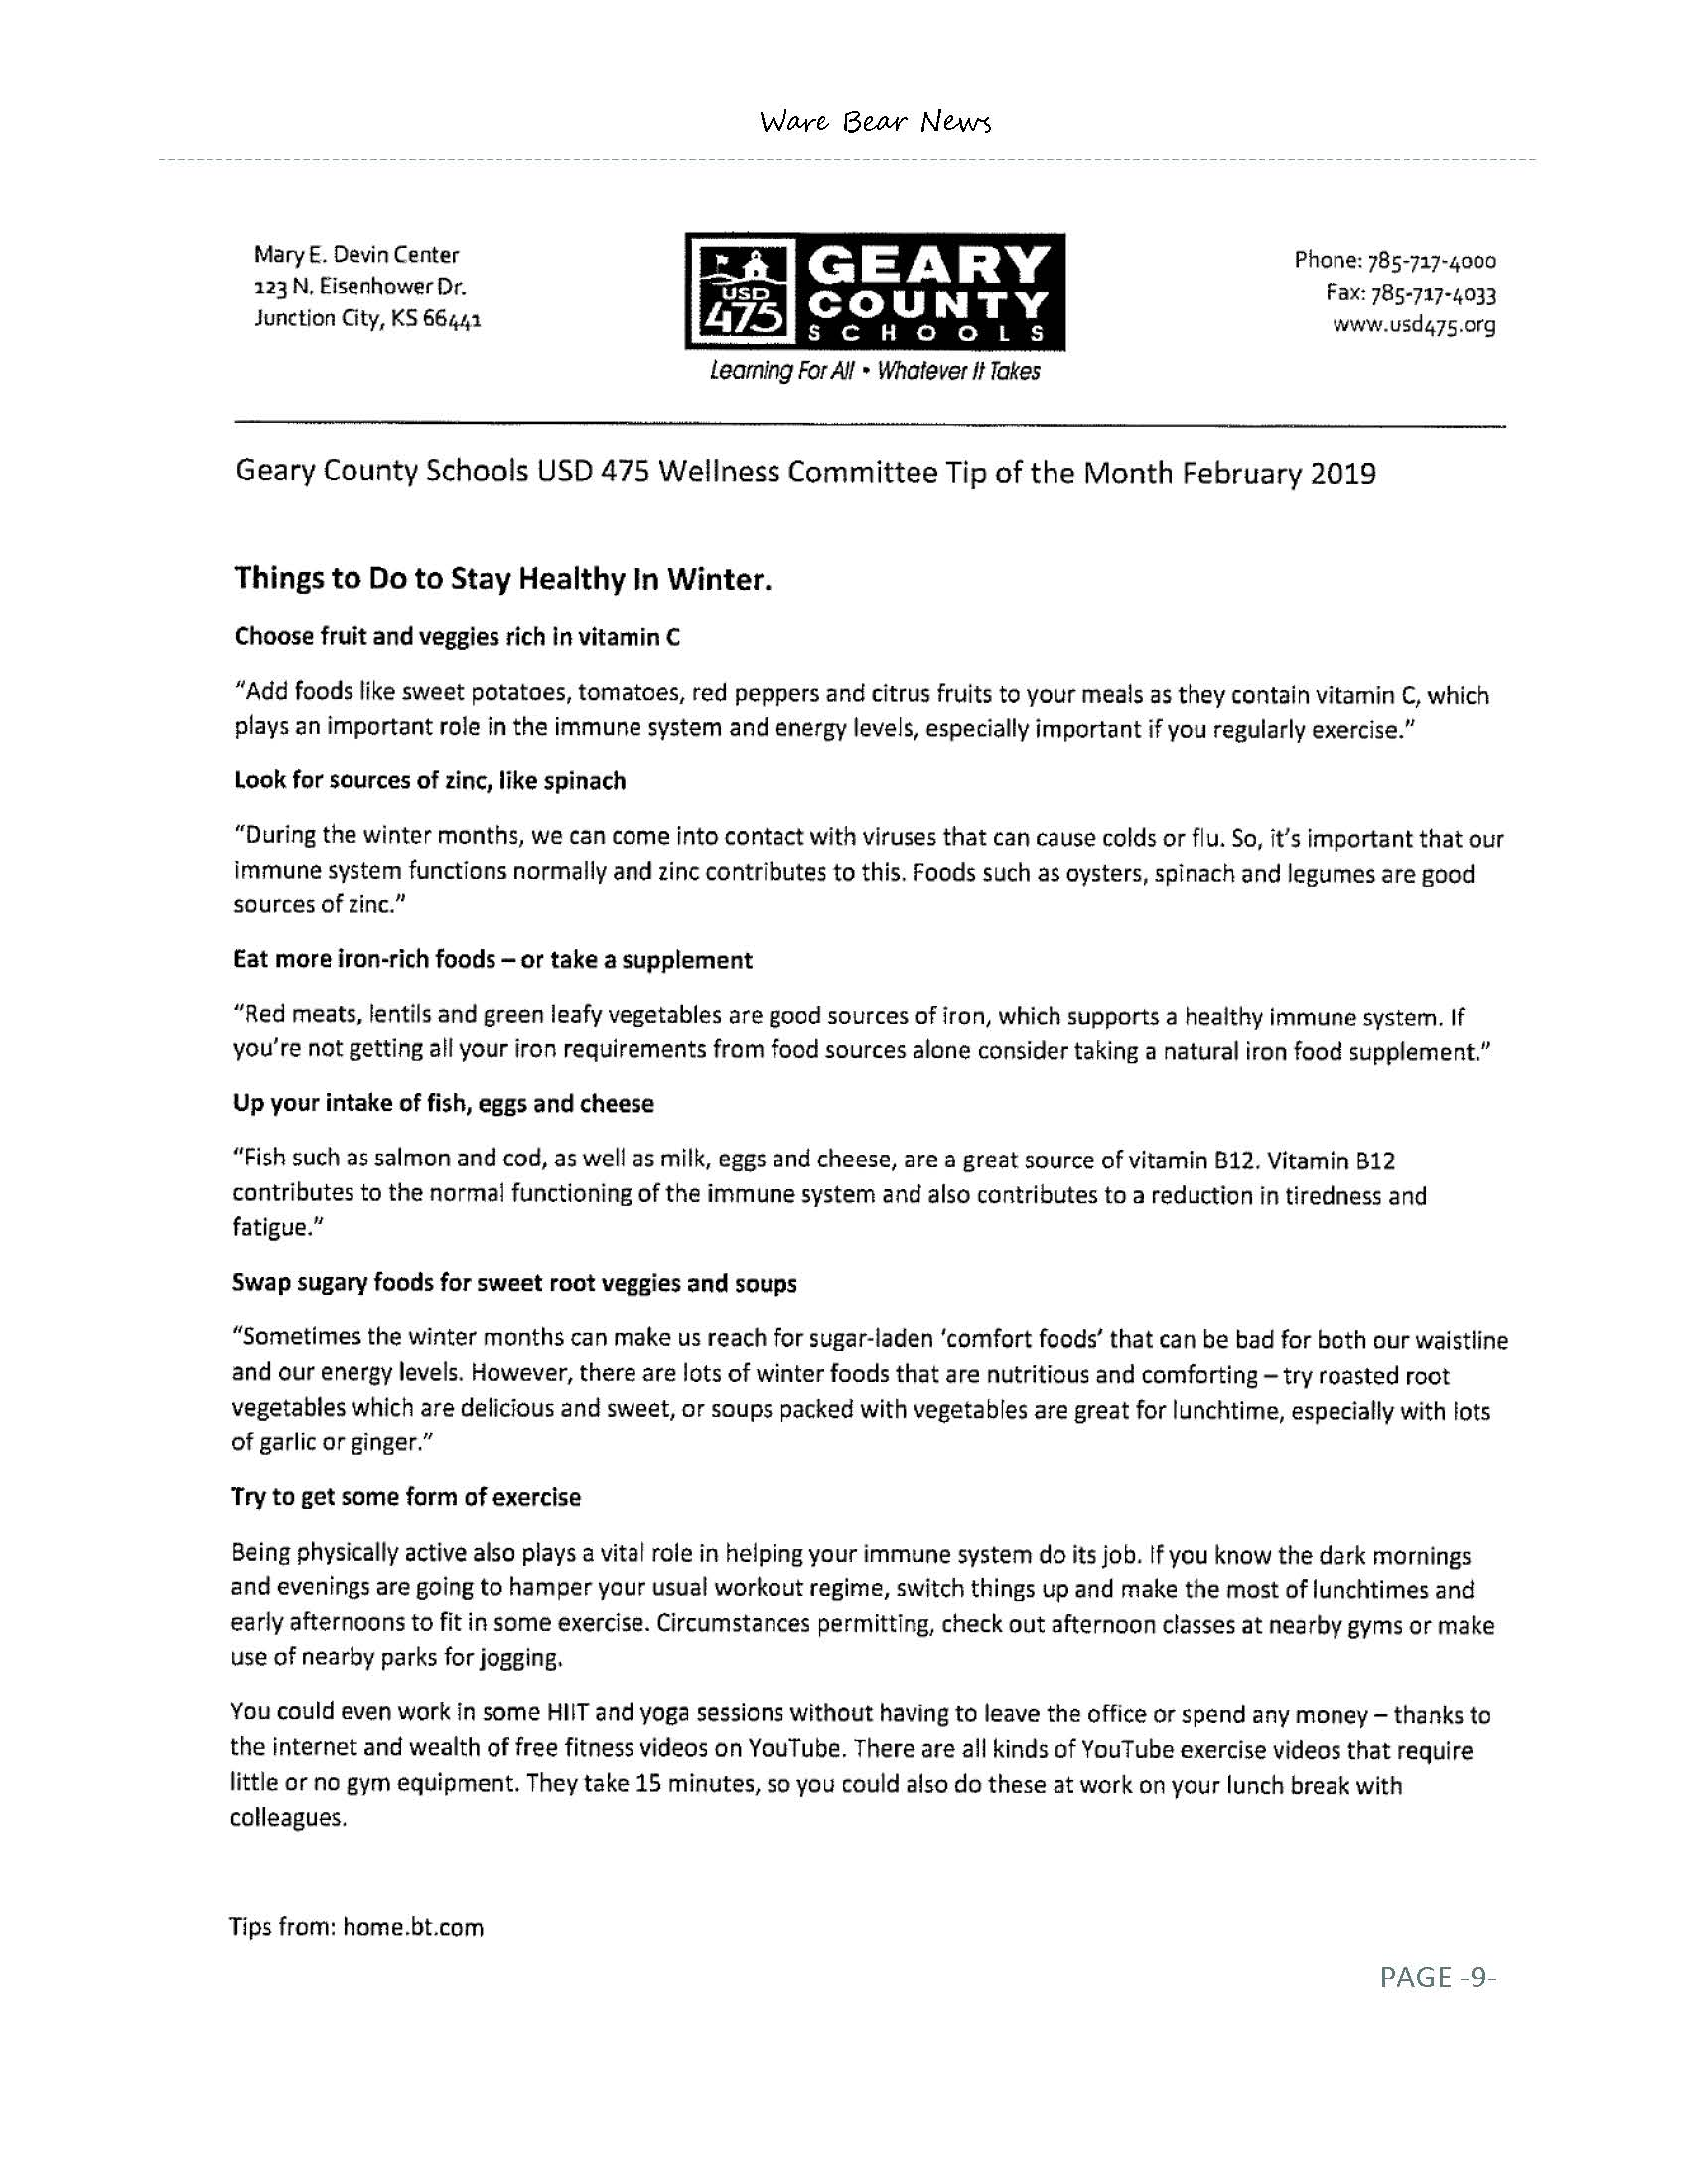 February eNewsletter Page 09